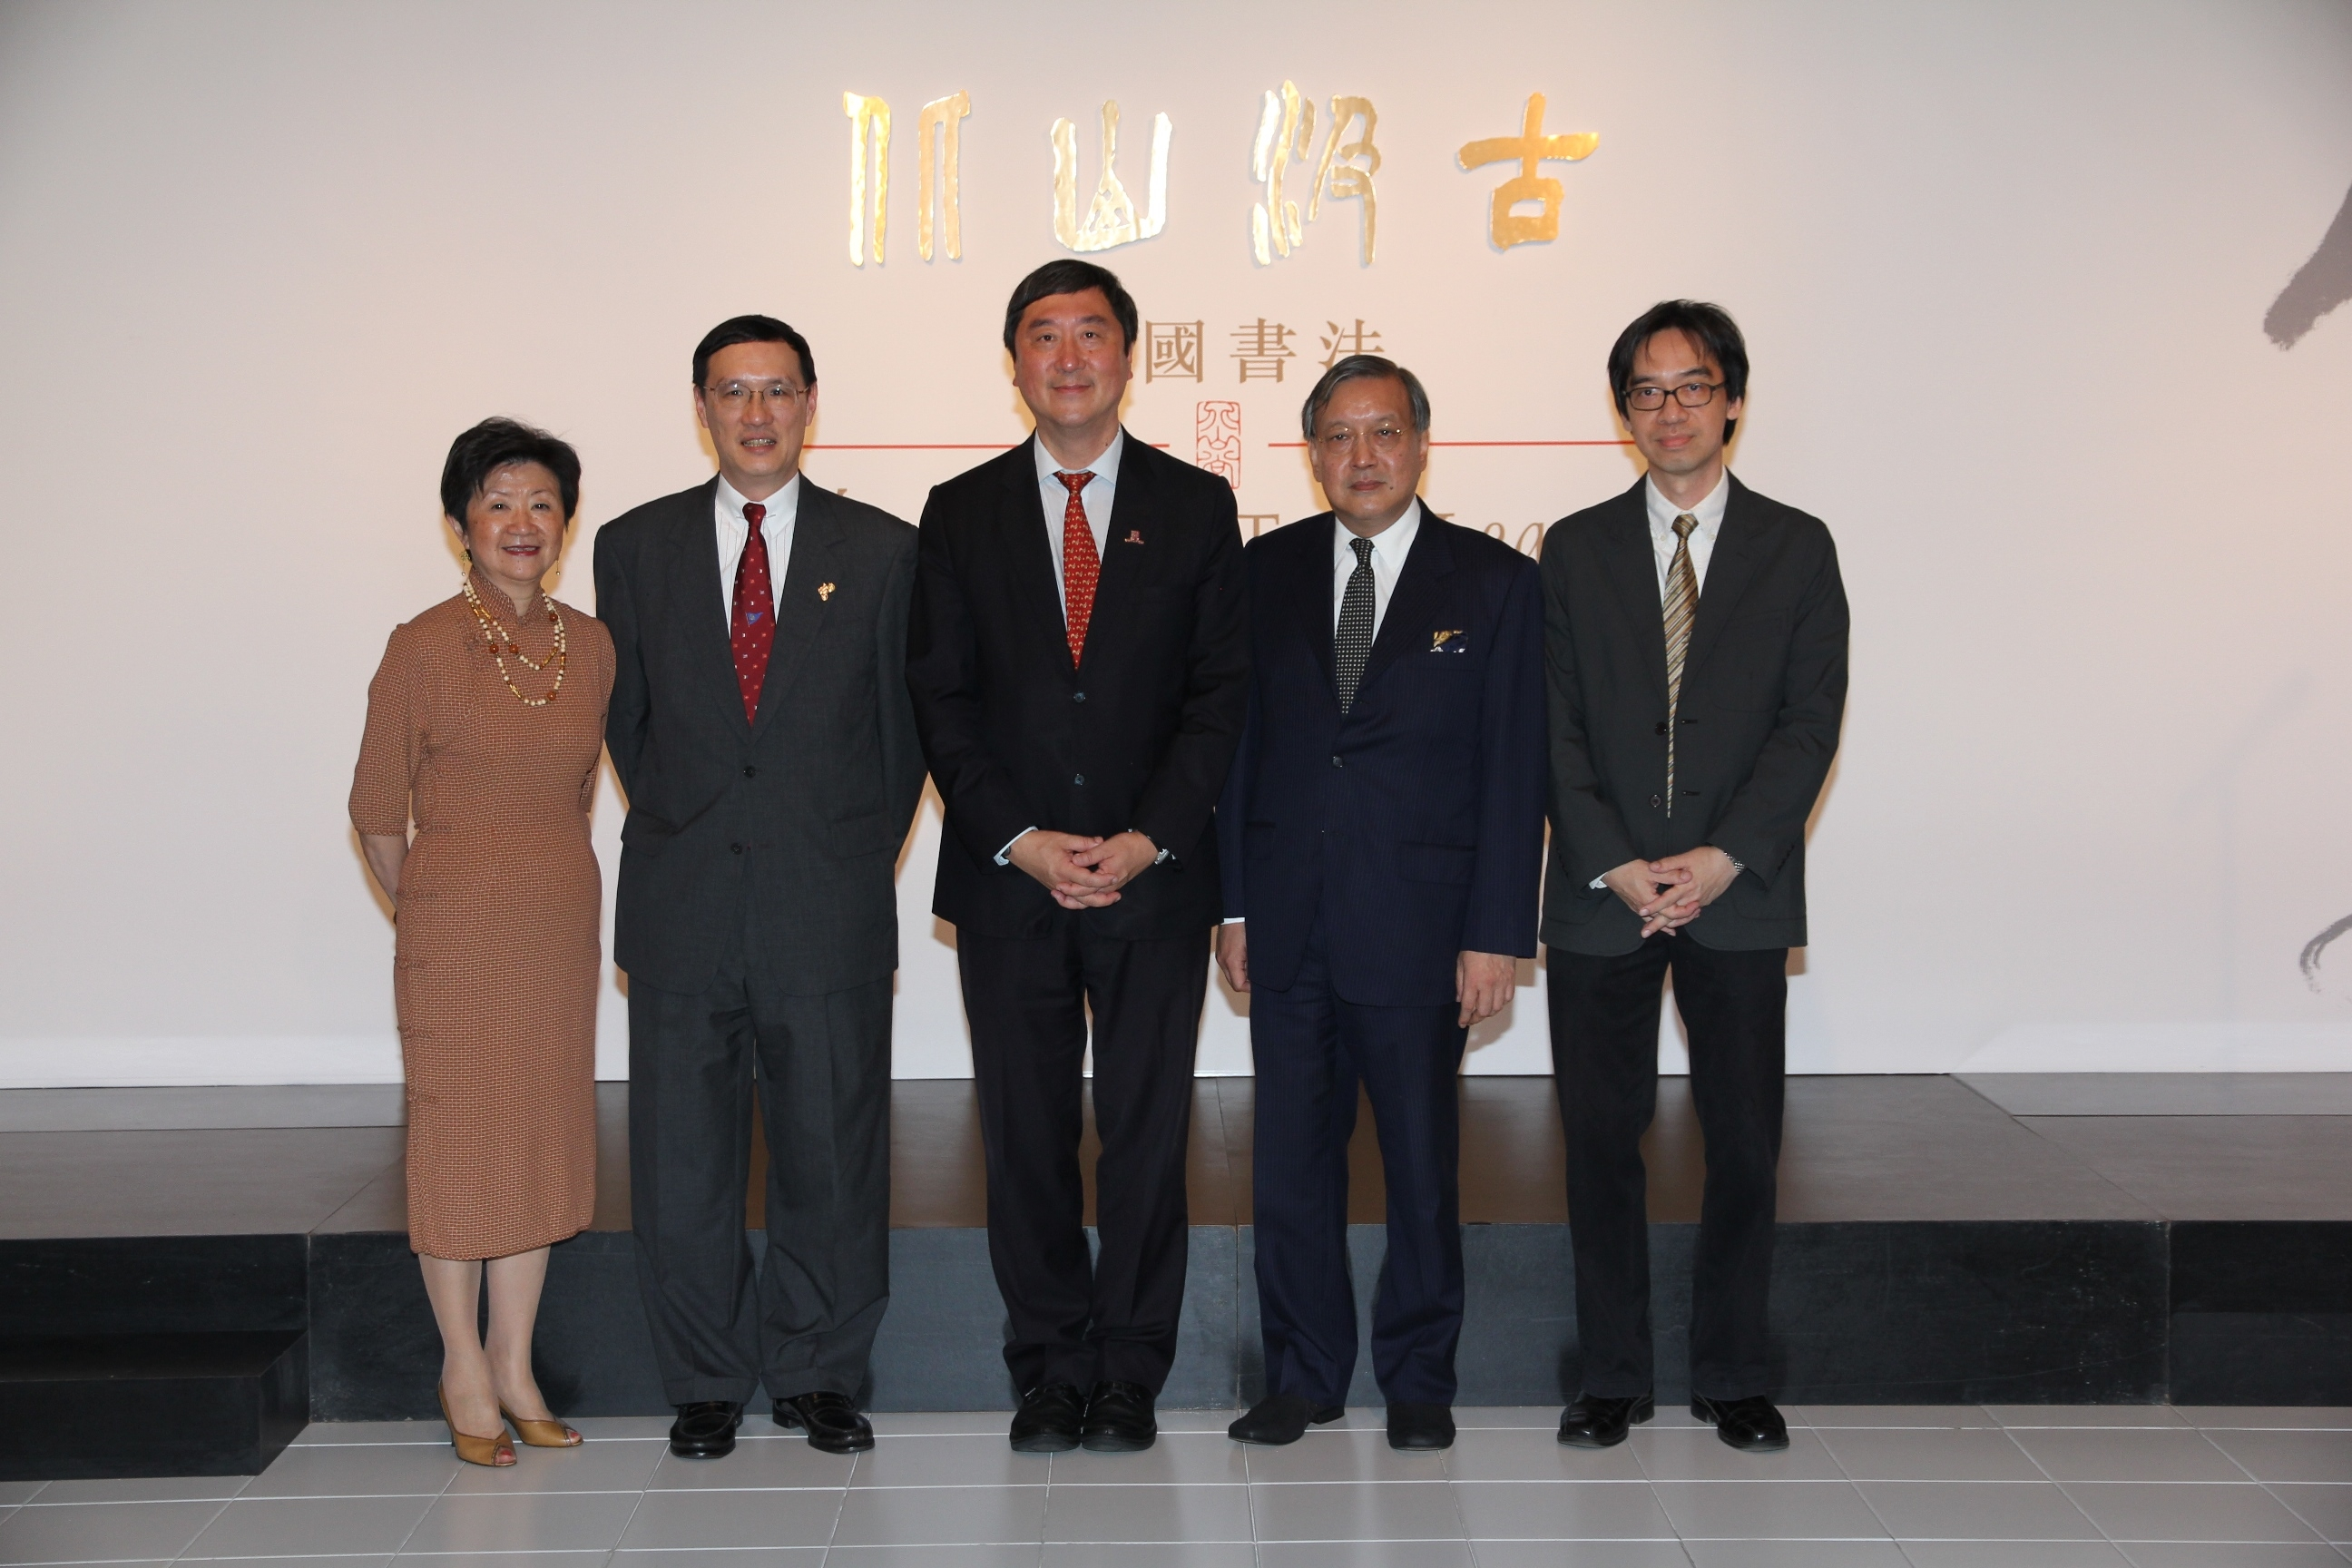 (From left) Prof. Jenny So, Director of Art Museum; Mr. Chien Lee, Chairman of Bei Shan Tang Foundation; Prof. Joseph Sung, Vice-Chancellor and President of CUHK; Mr. Christopher Mok, Chairman of Advisory Committee of the Art Museum; Prof. Harold Mok, Chairman of Department of Fine Arts and Curator of the exhibition, officiated at the opening reception.